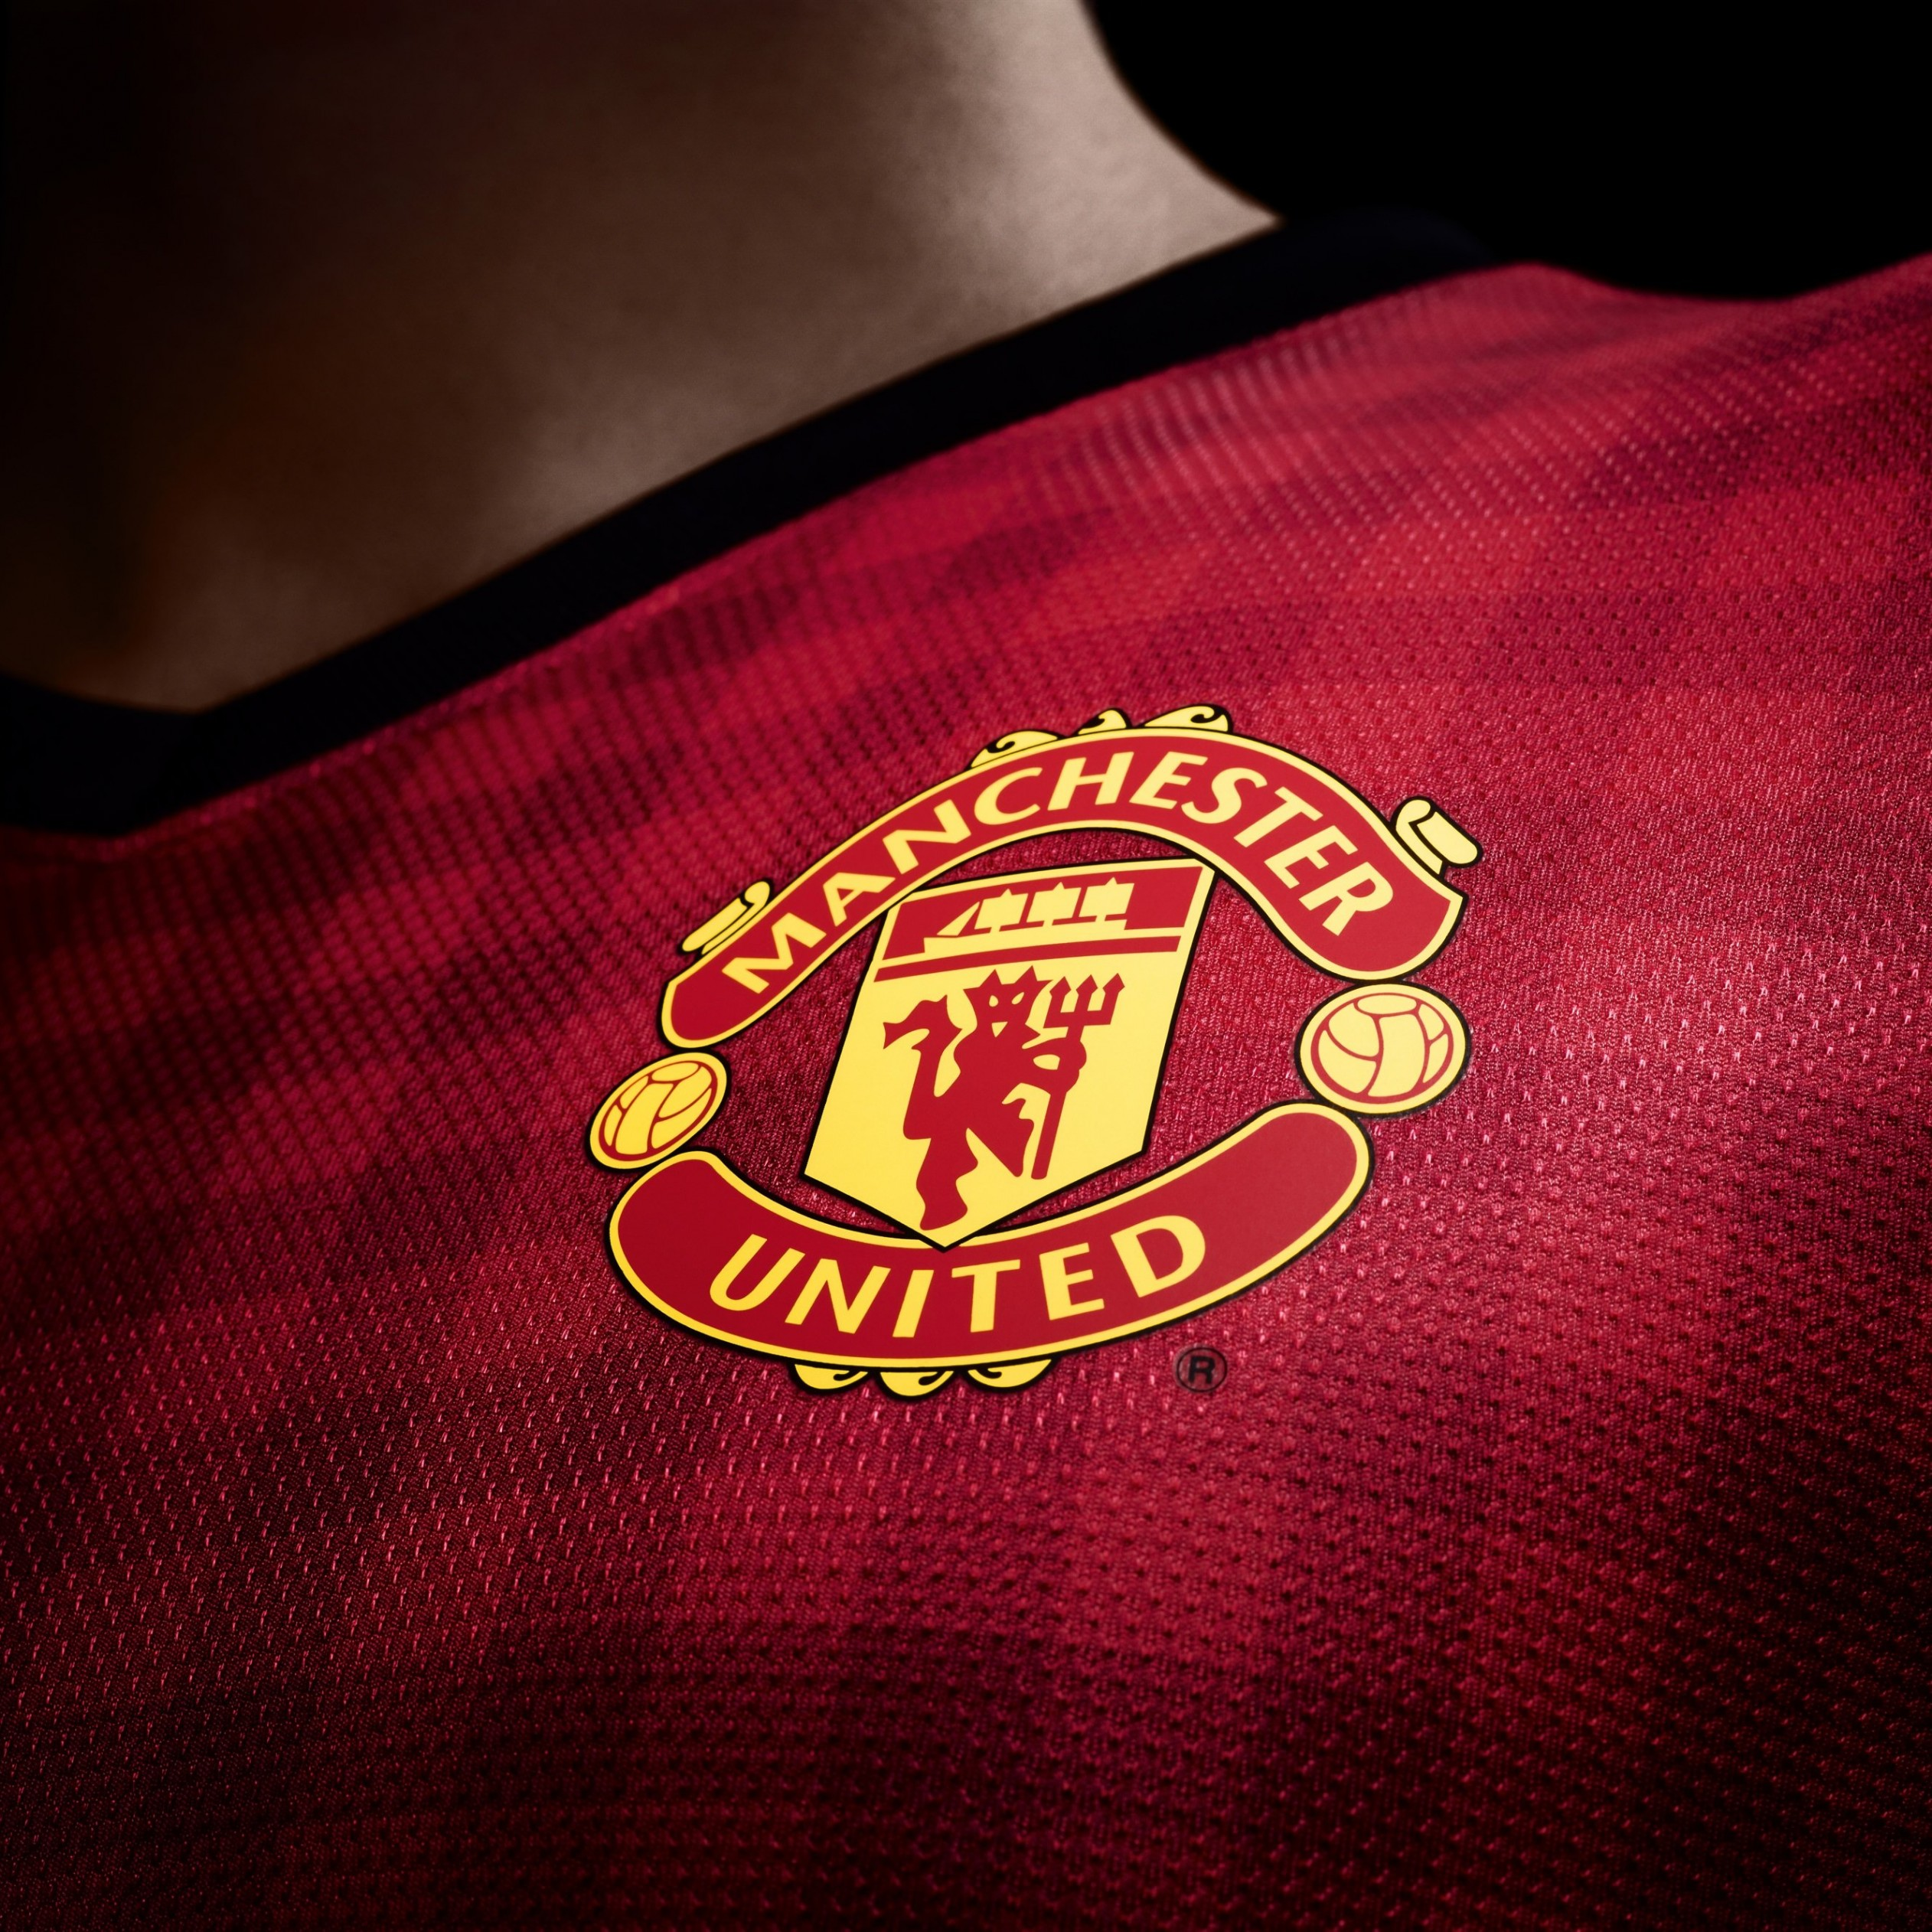 Manchester United Logo Shirt Wallpaper for Apple iPad mini 2